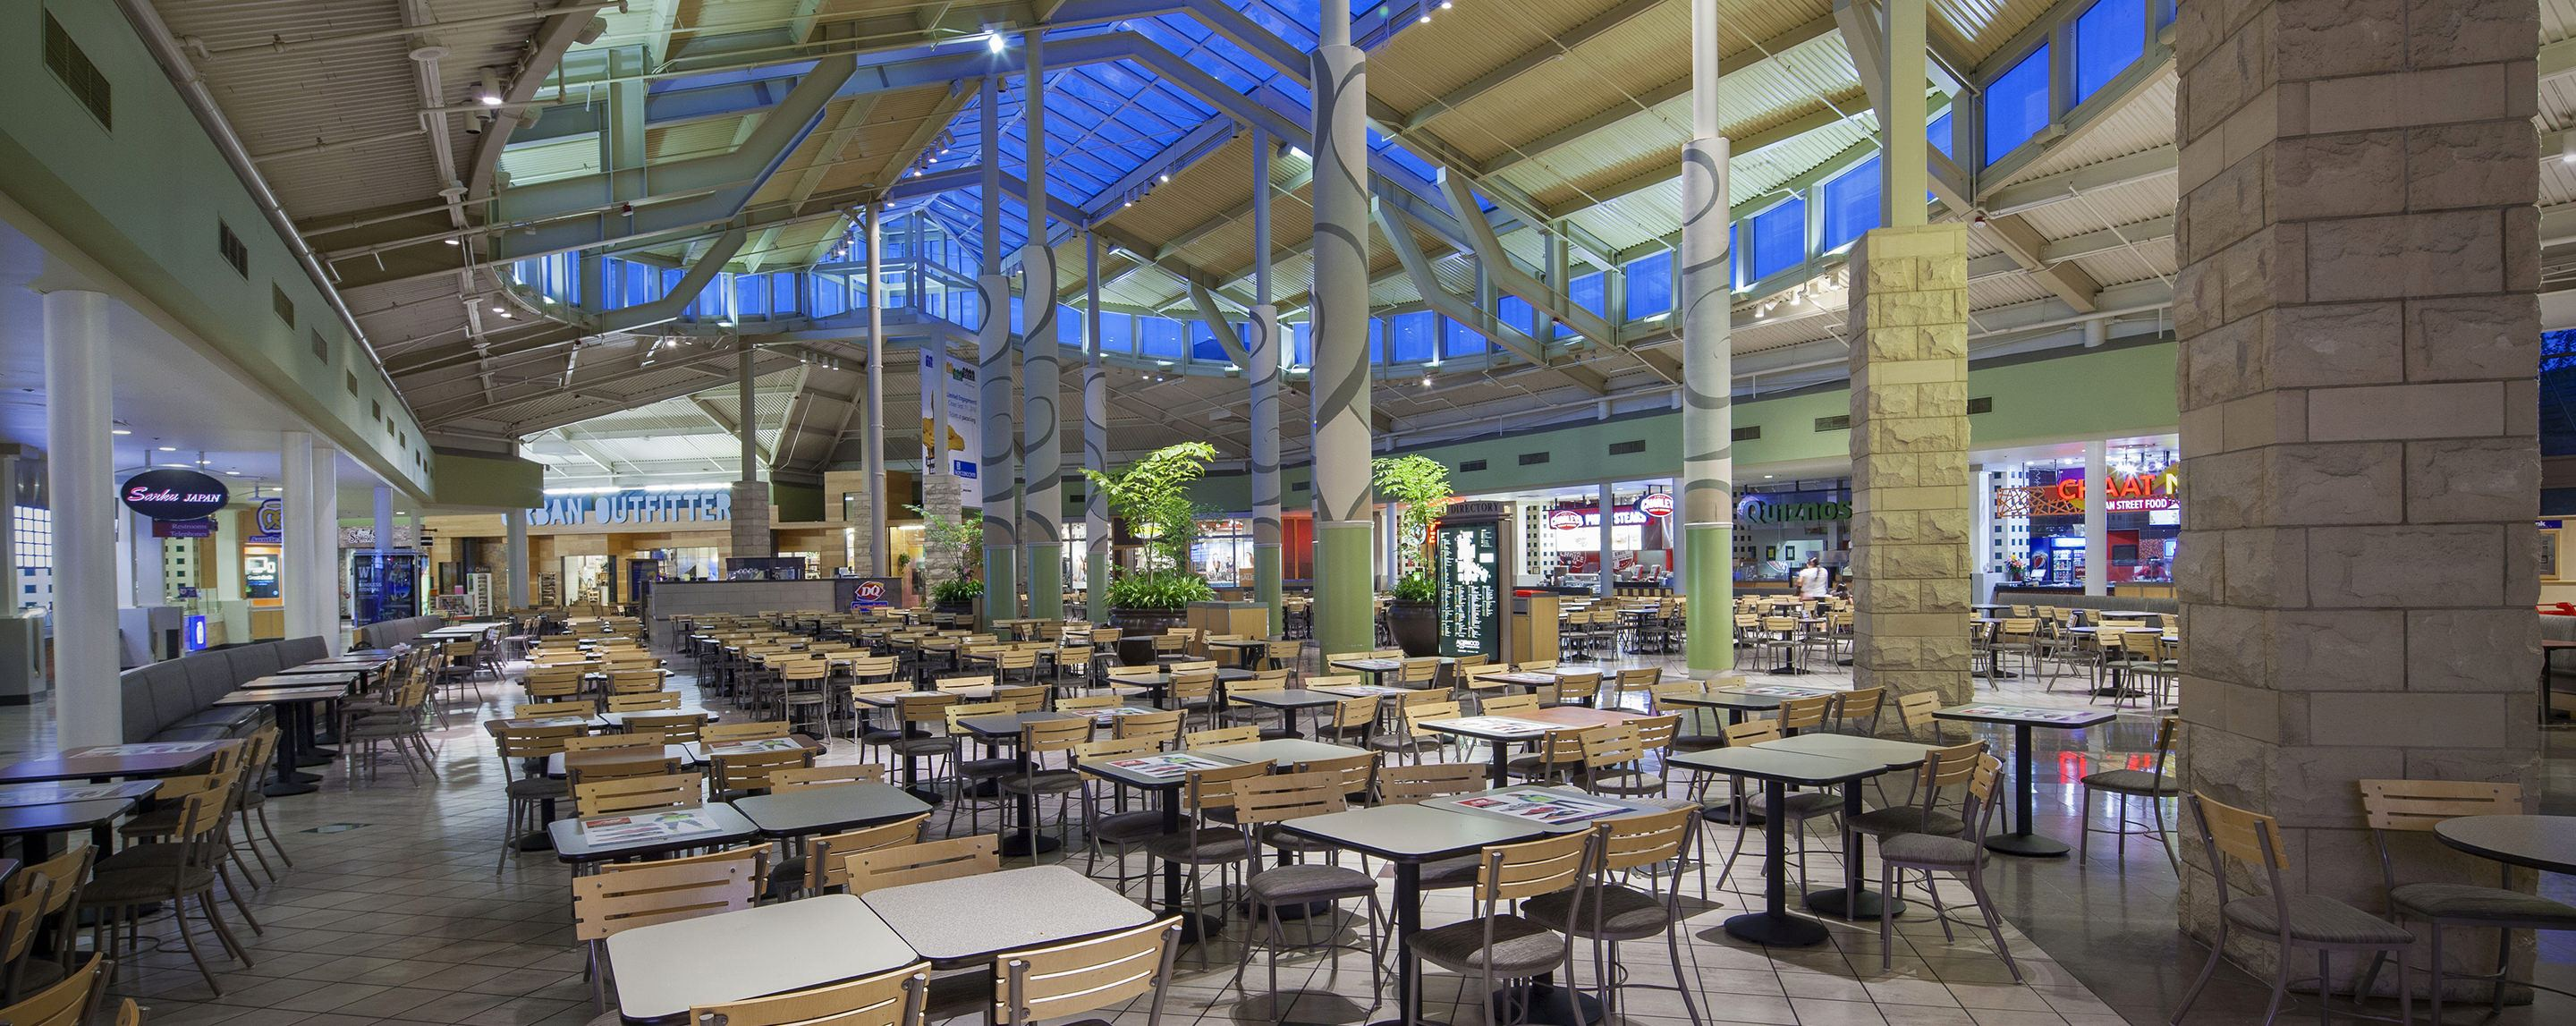 Rows of tables sit under a glass roof in an indoor mall. The tables are mostly empty.